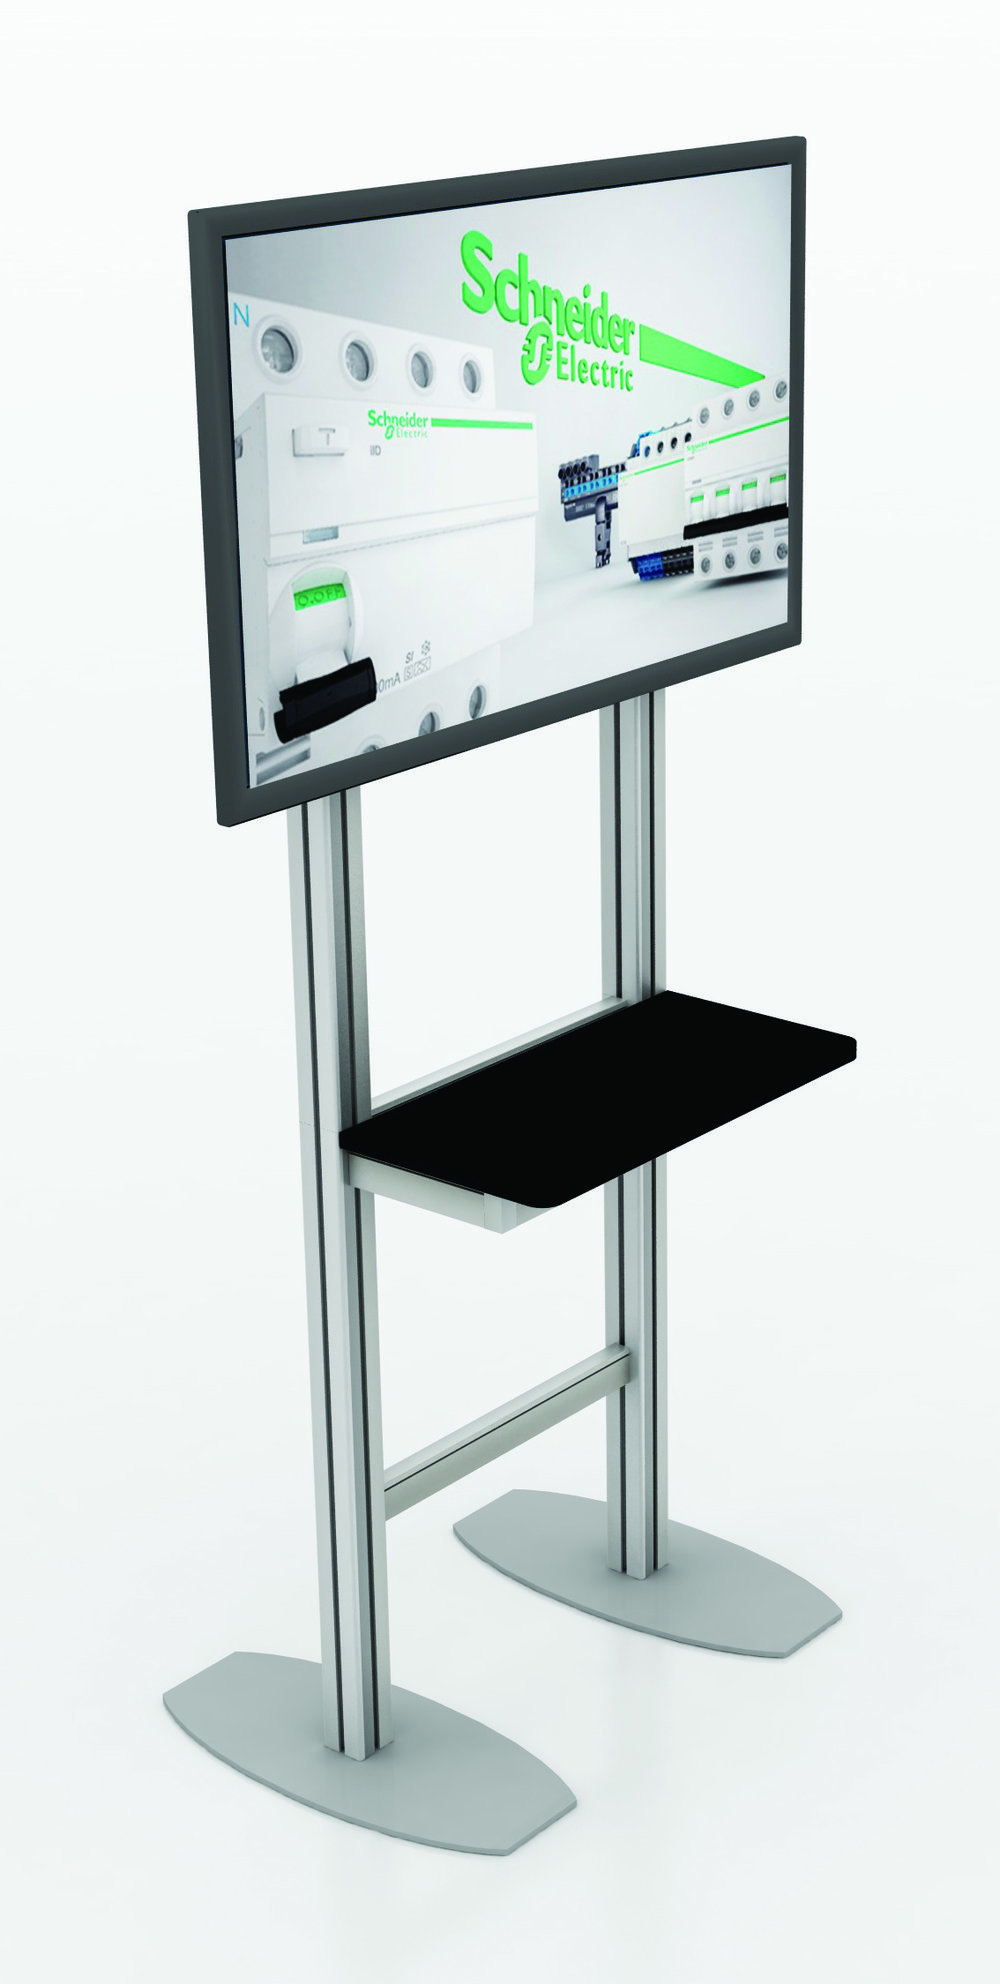 Monitor Stands Denmar Displays Exhibits